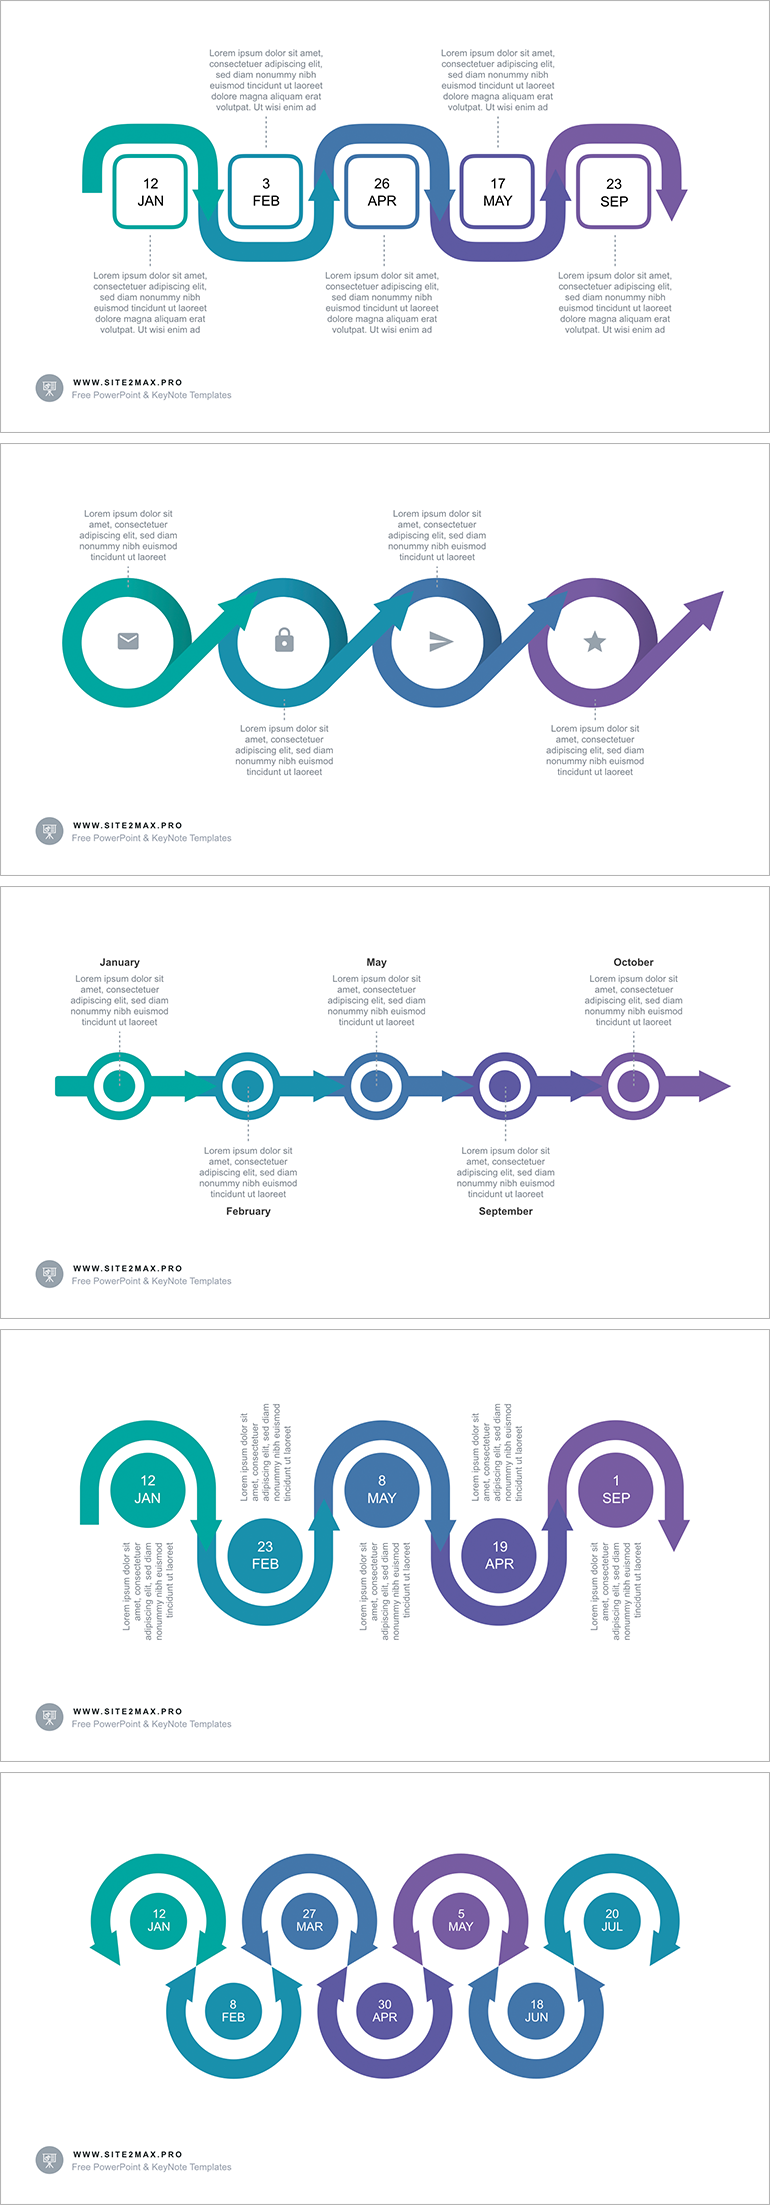 40 free infographic templates to download tng pinterest timeline arrow ppt type 2 for powerpoint template get it free toneelgroepblik Gallery